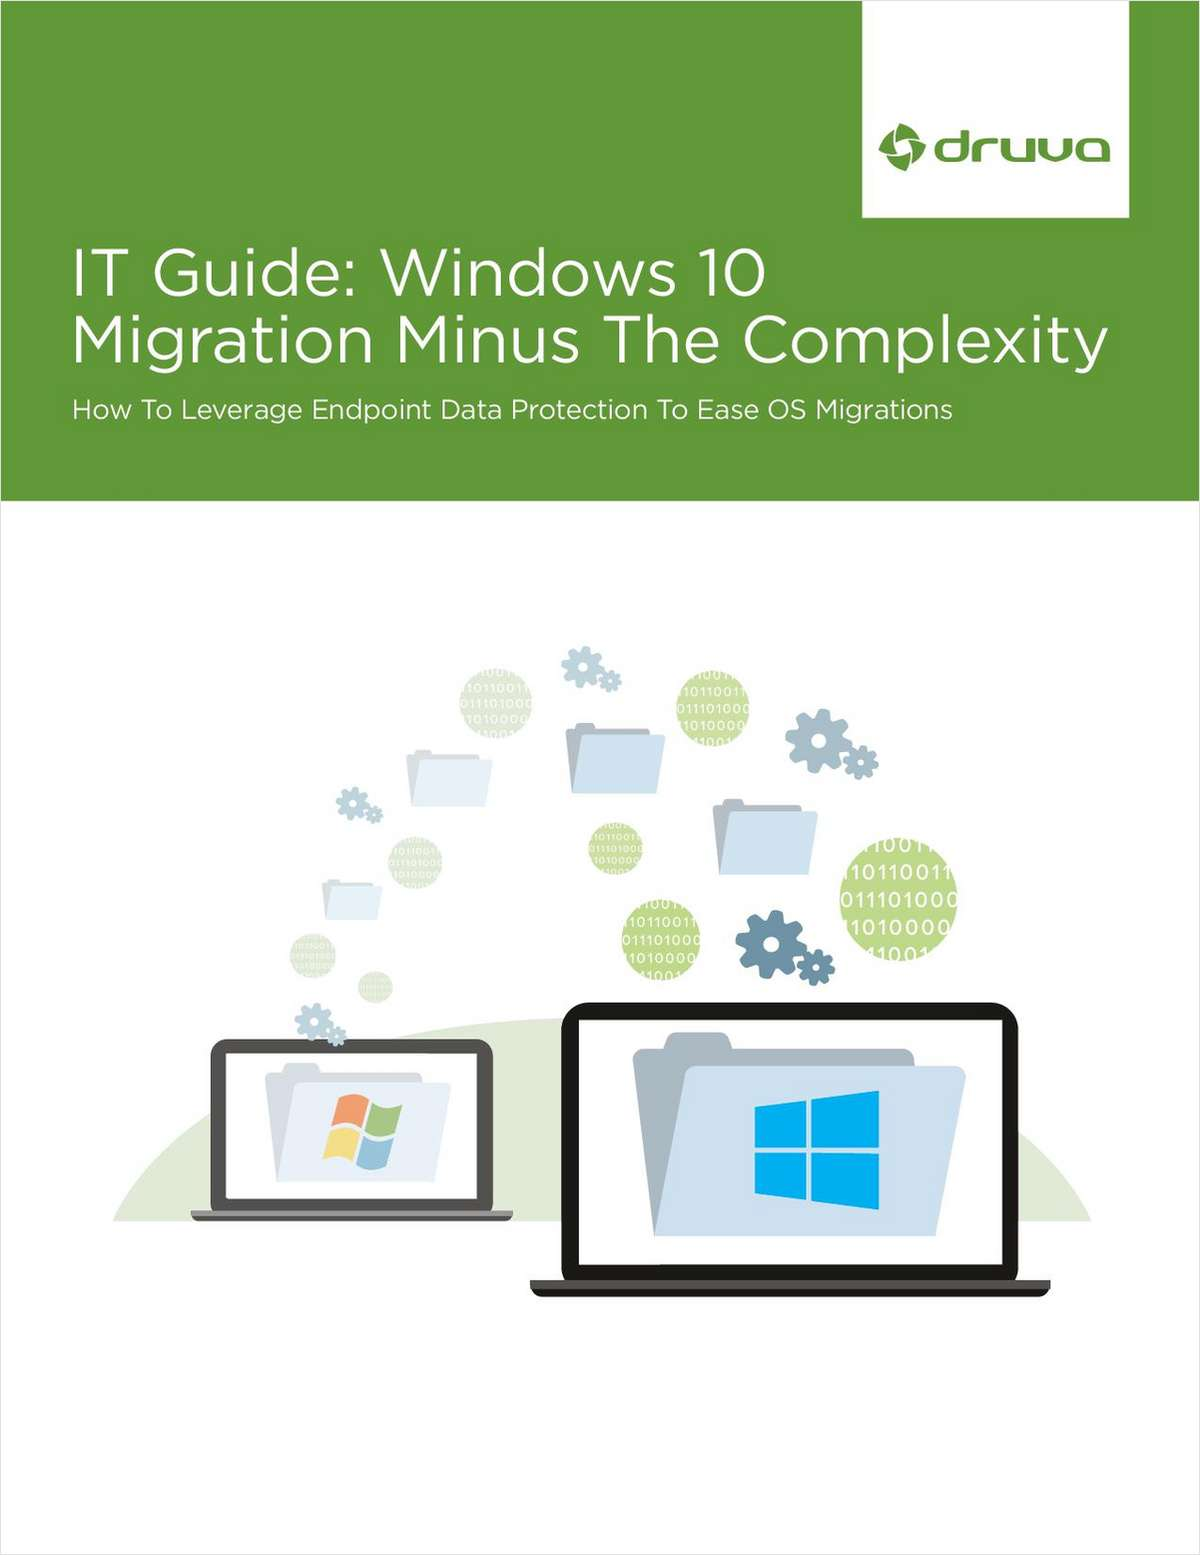 Windows 10 Migration Guide: Reduce Complexity, Streamline Process